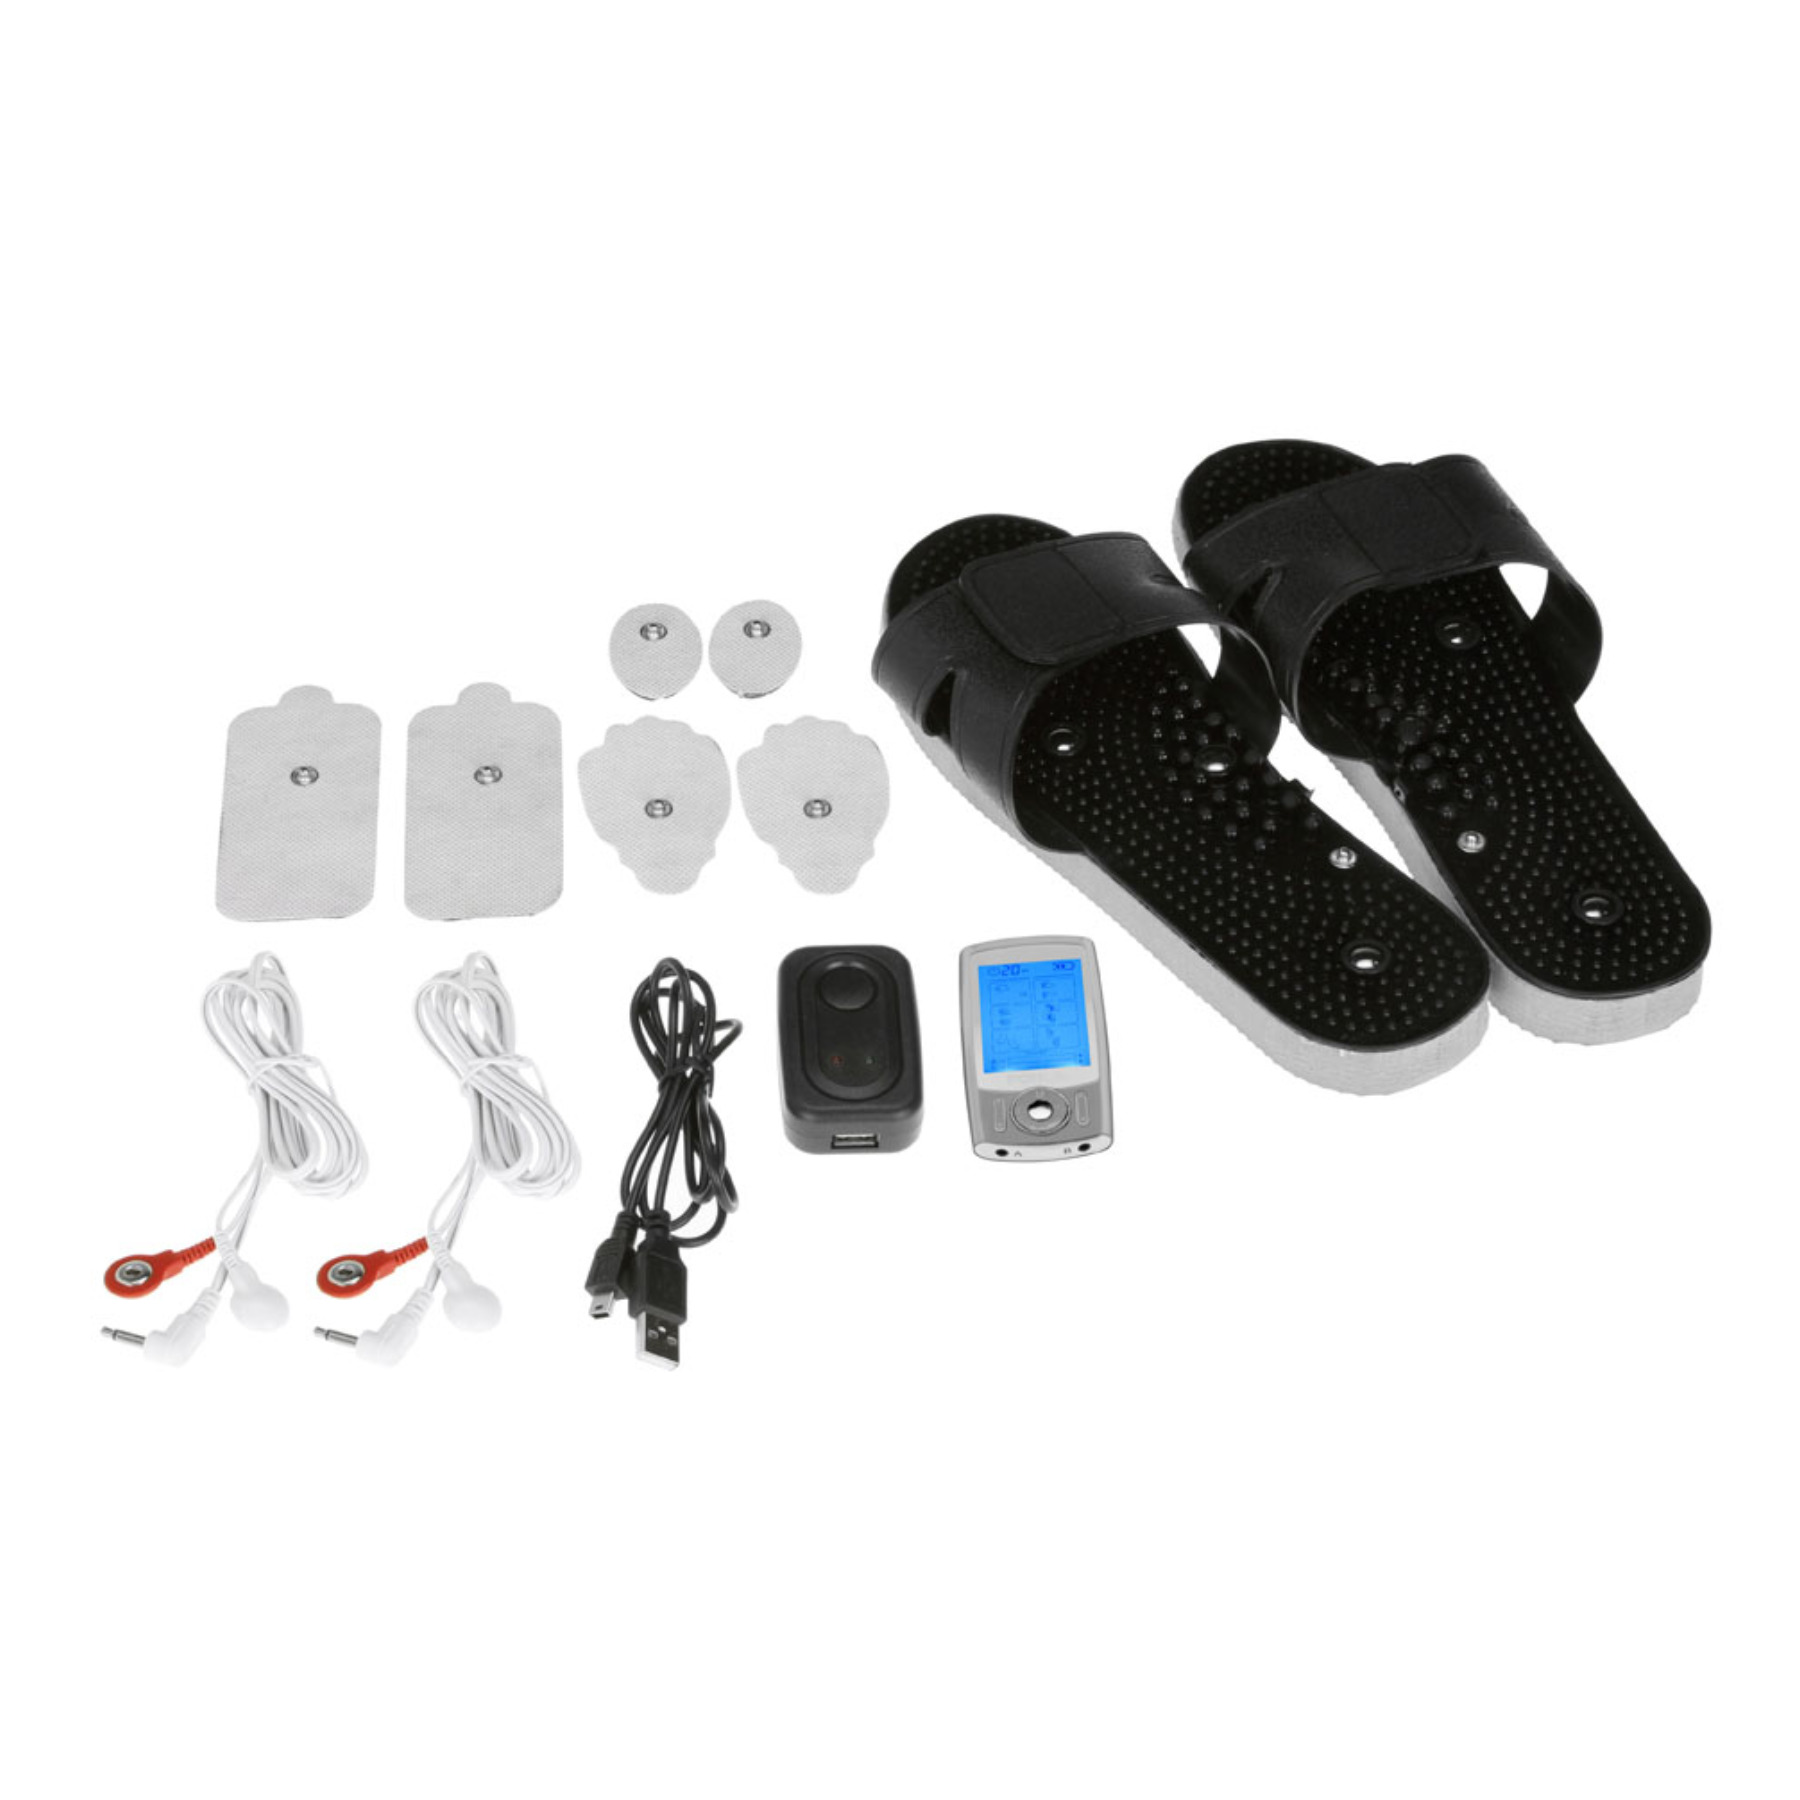 PCH Plus Digital Pulse Massager - Silver Shoe Combo Set